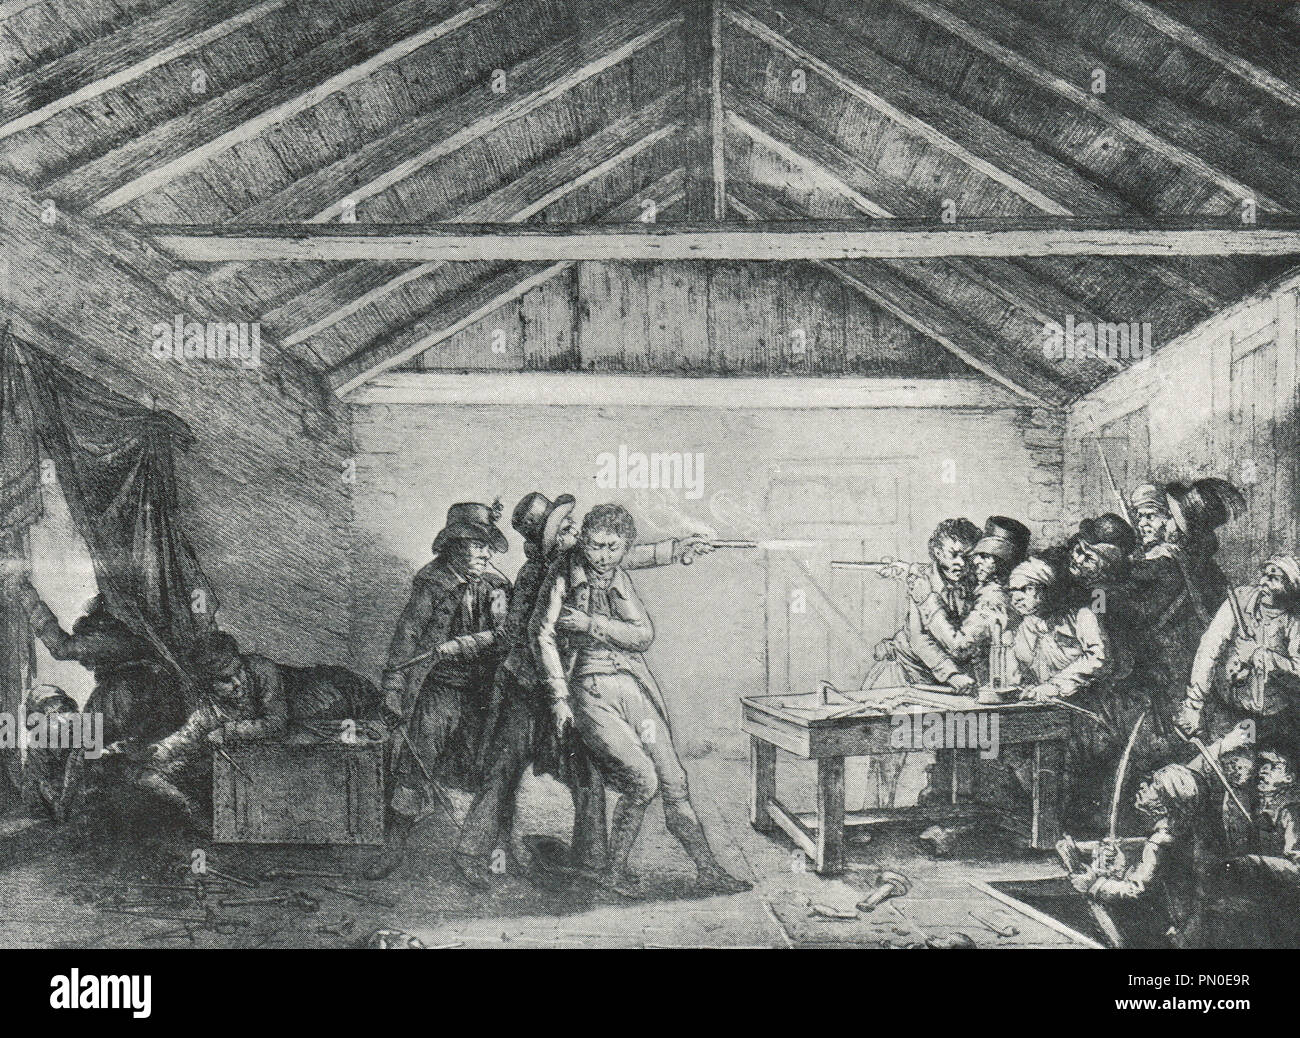 The arrest of The Cato Street Conspirators. The Cato Street Conspiracy was an attempt to murder Prime Minister Lord Liverpool, and all the British cabinet in 1820 - Stock Image